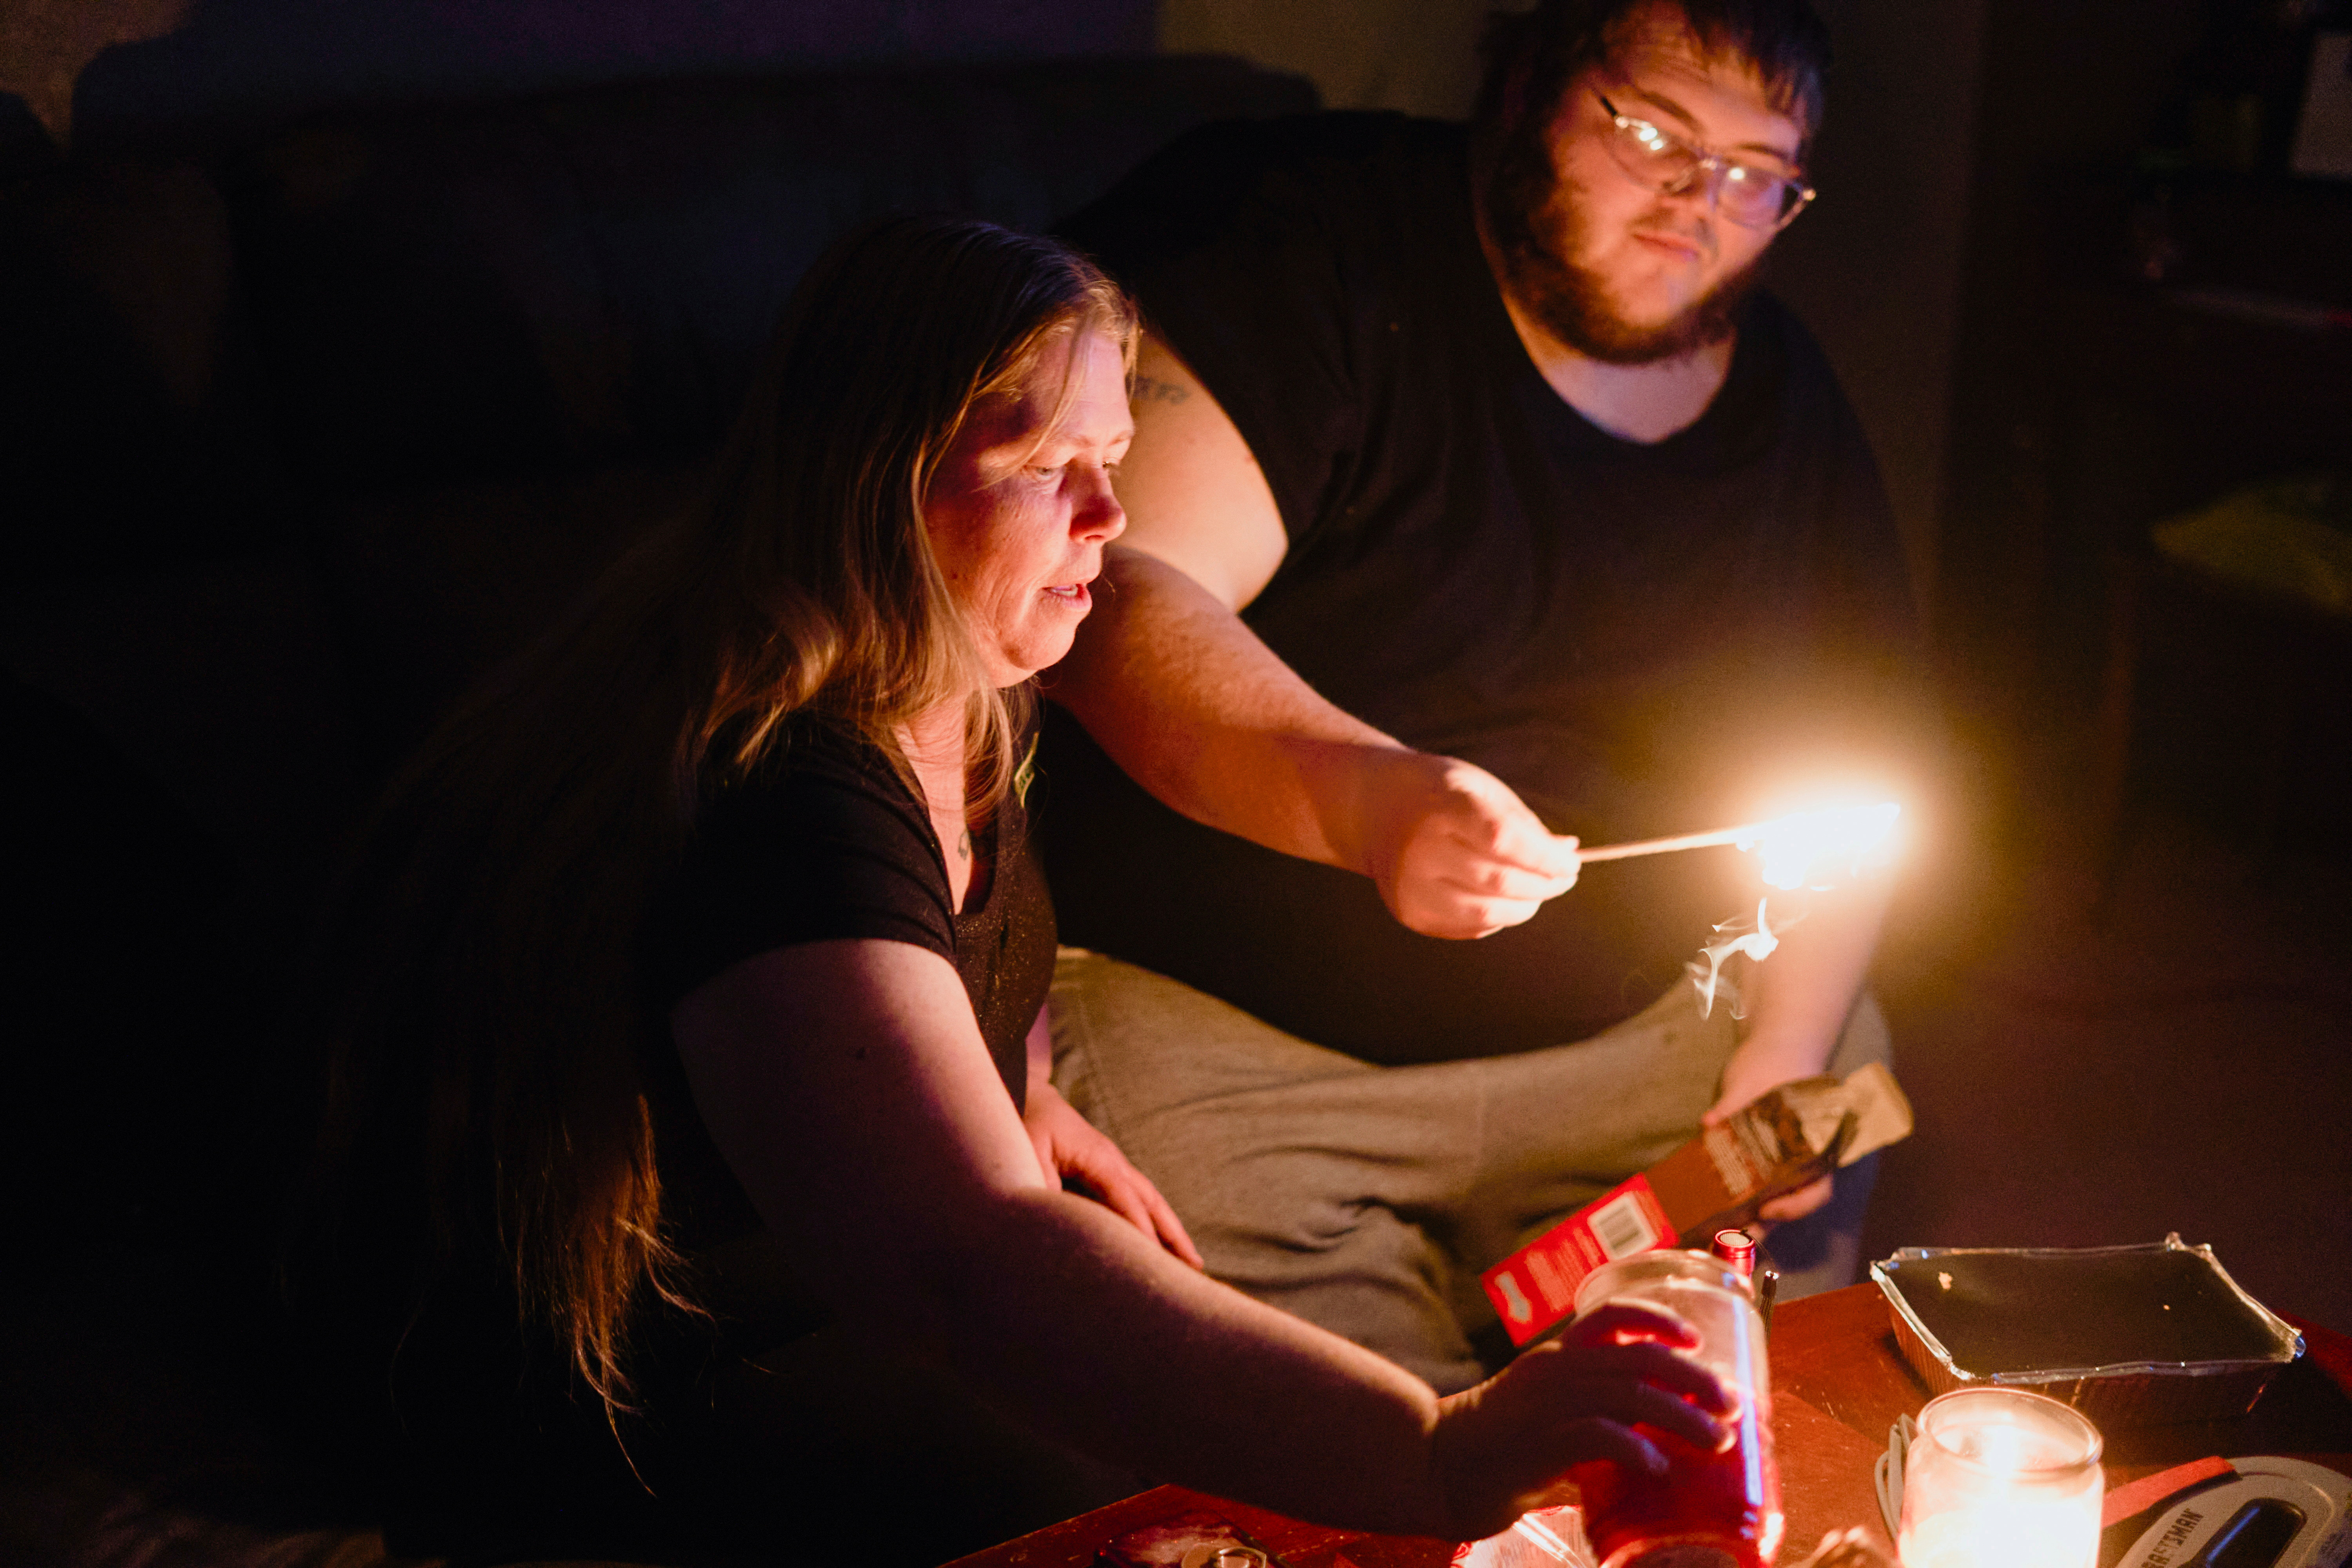 """Christina Beverly and John Shearon light candles in their home after winter weather caused electricity blackouts and """"boil water"""" notices in Fort Worth, Texas, U.S. February 20, 2021. Their home has not had power since blackouts began across the state on Sunday, February 14, 2021, according to the residents.  REUTERS/Cooper Neill/File Photo"""